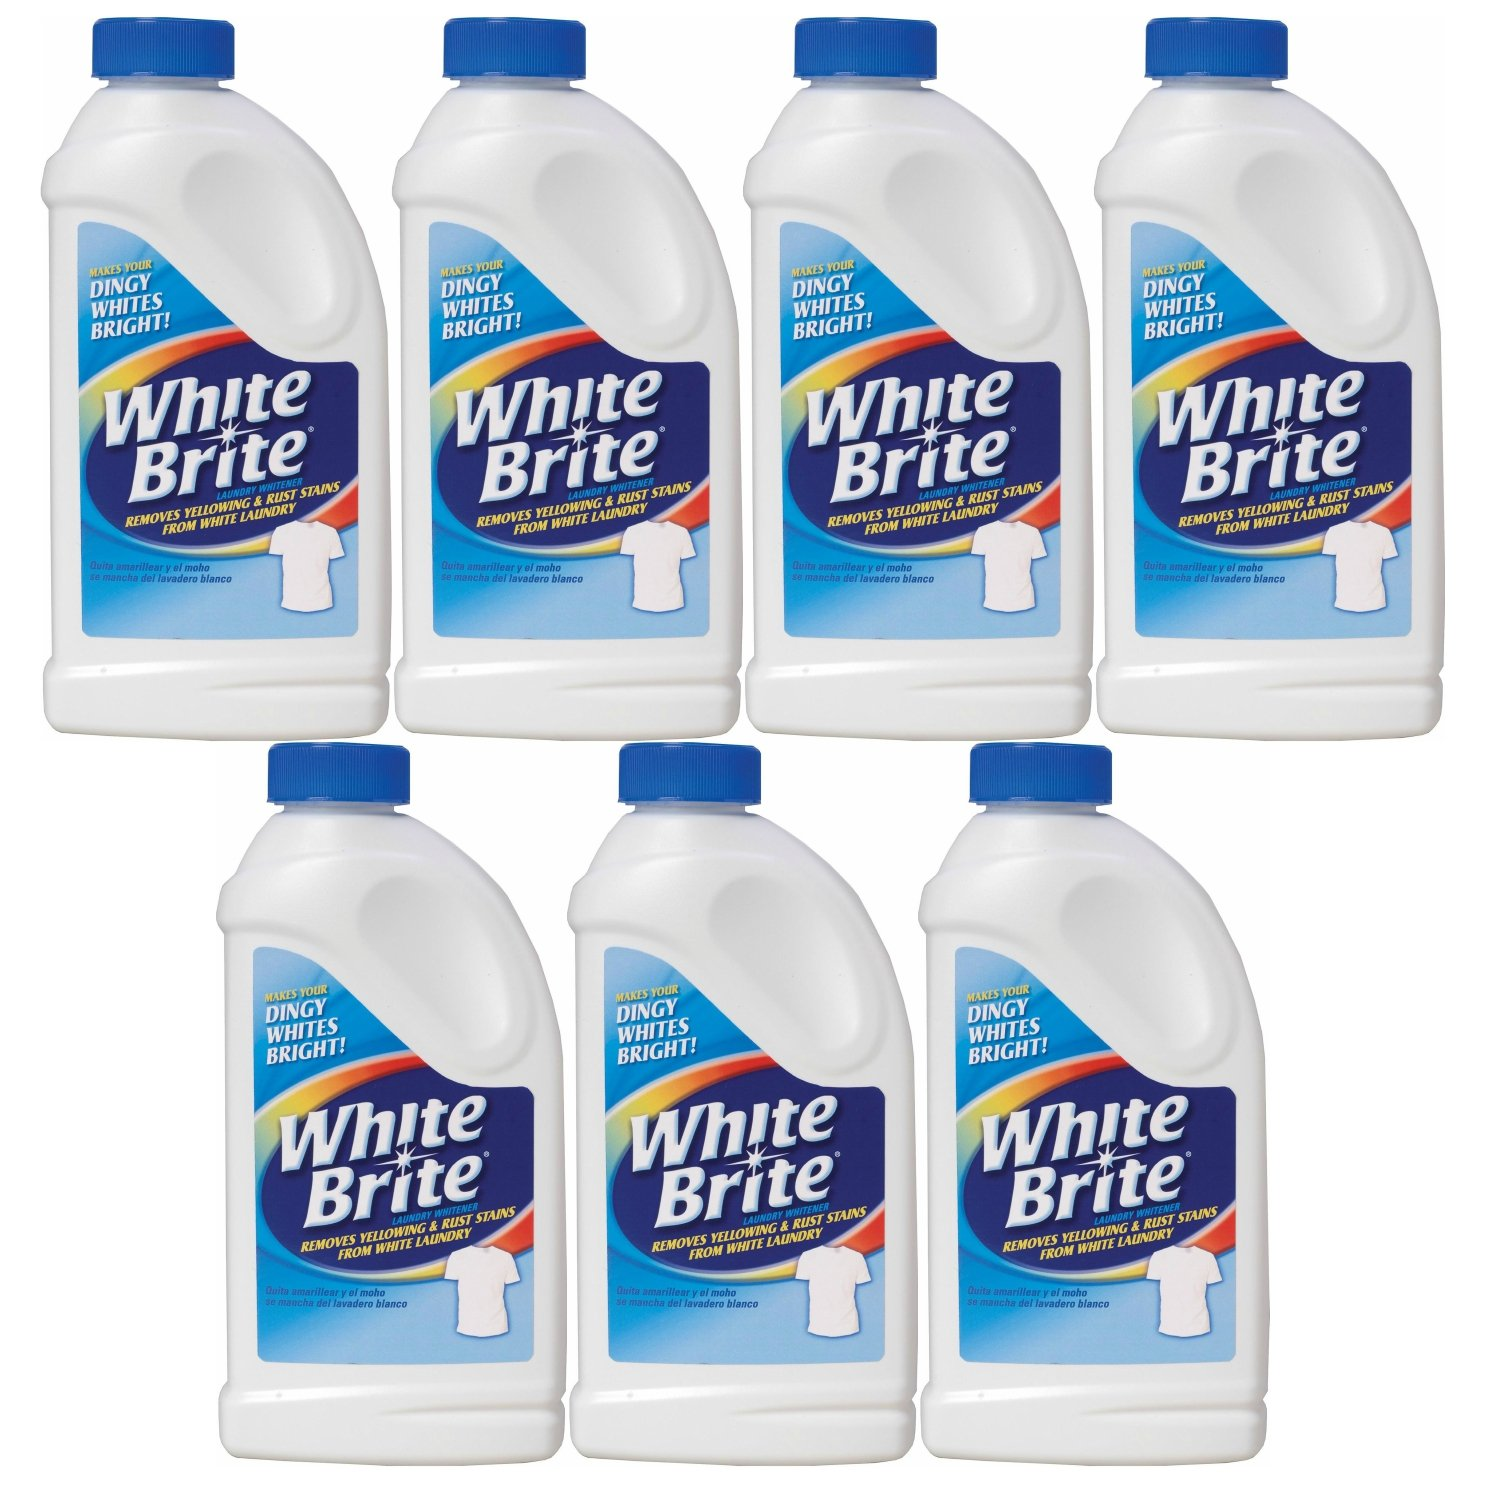 Pack of 7 - Out White Brite Laundry Whitener, 28 Ounces